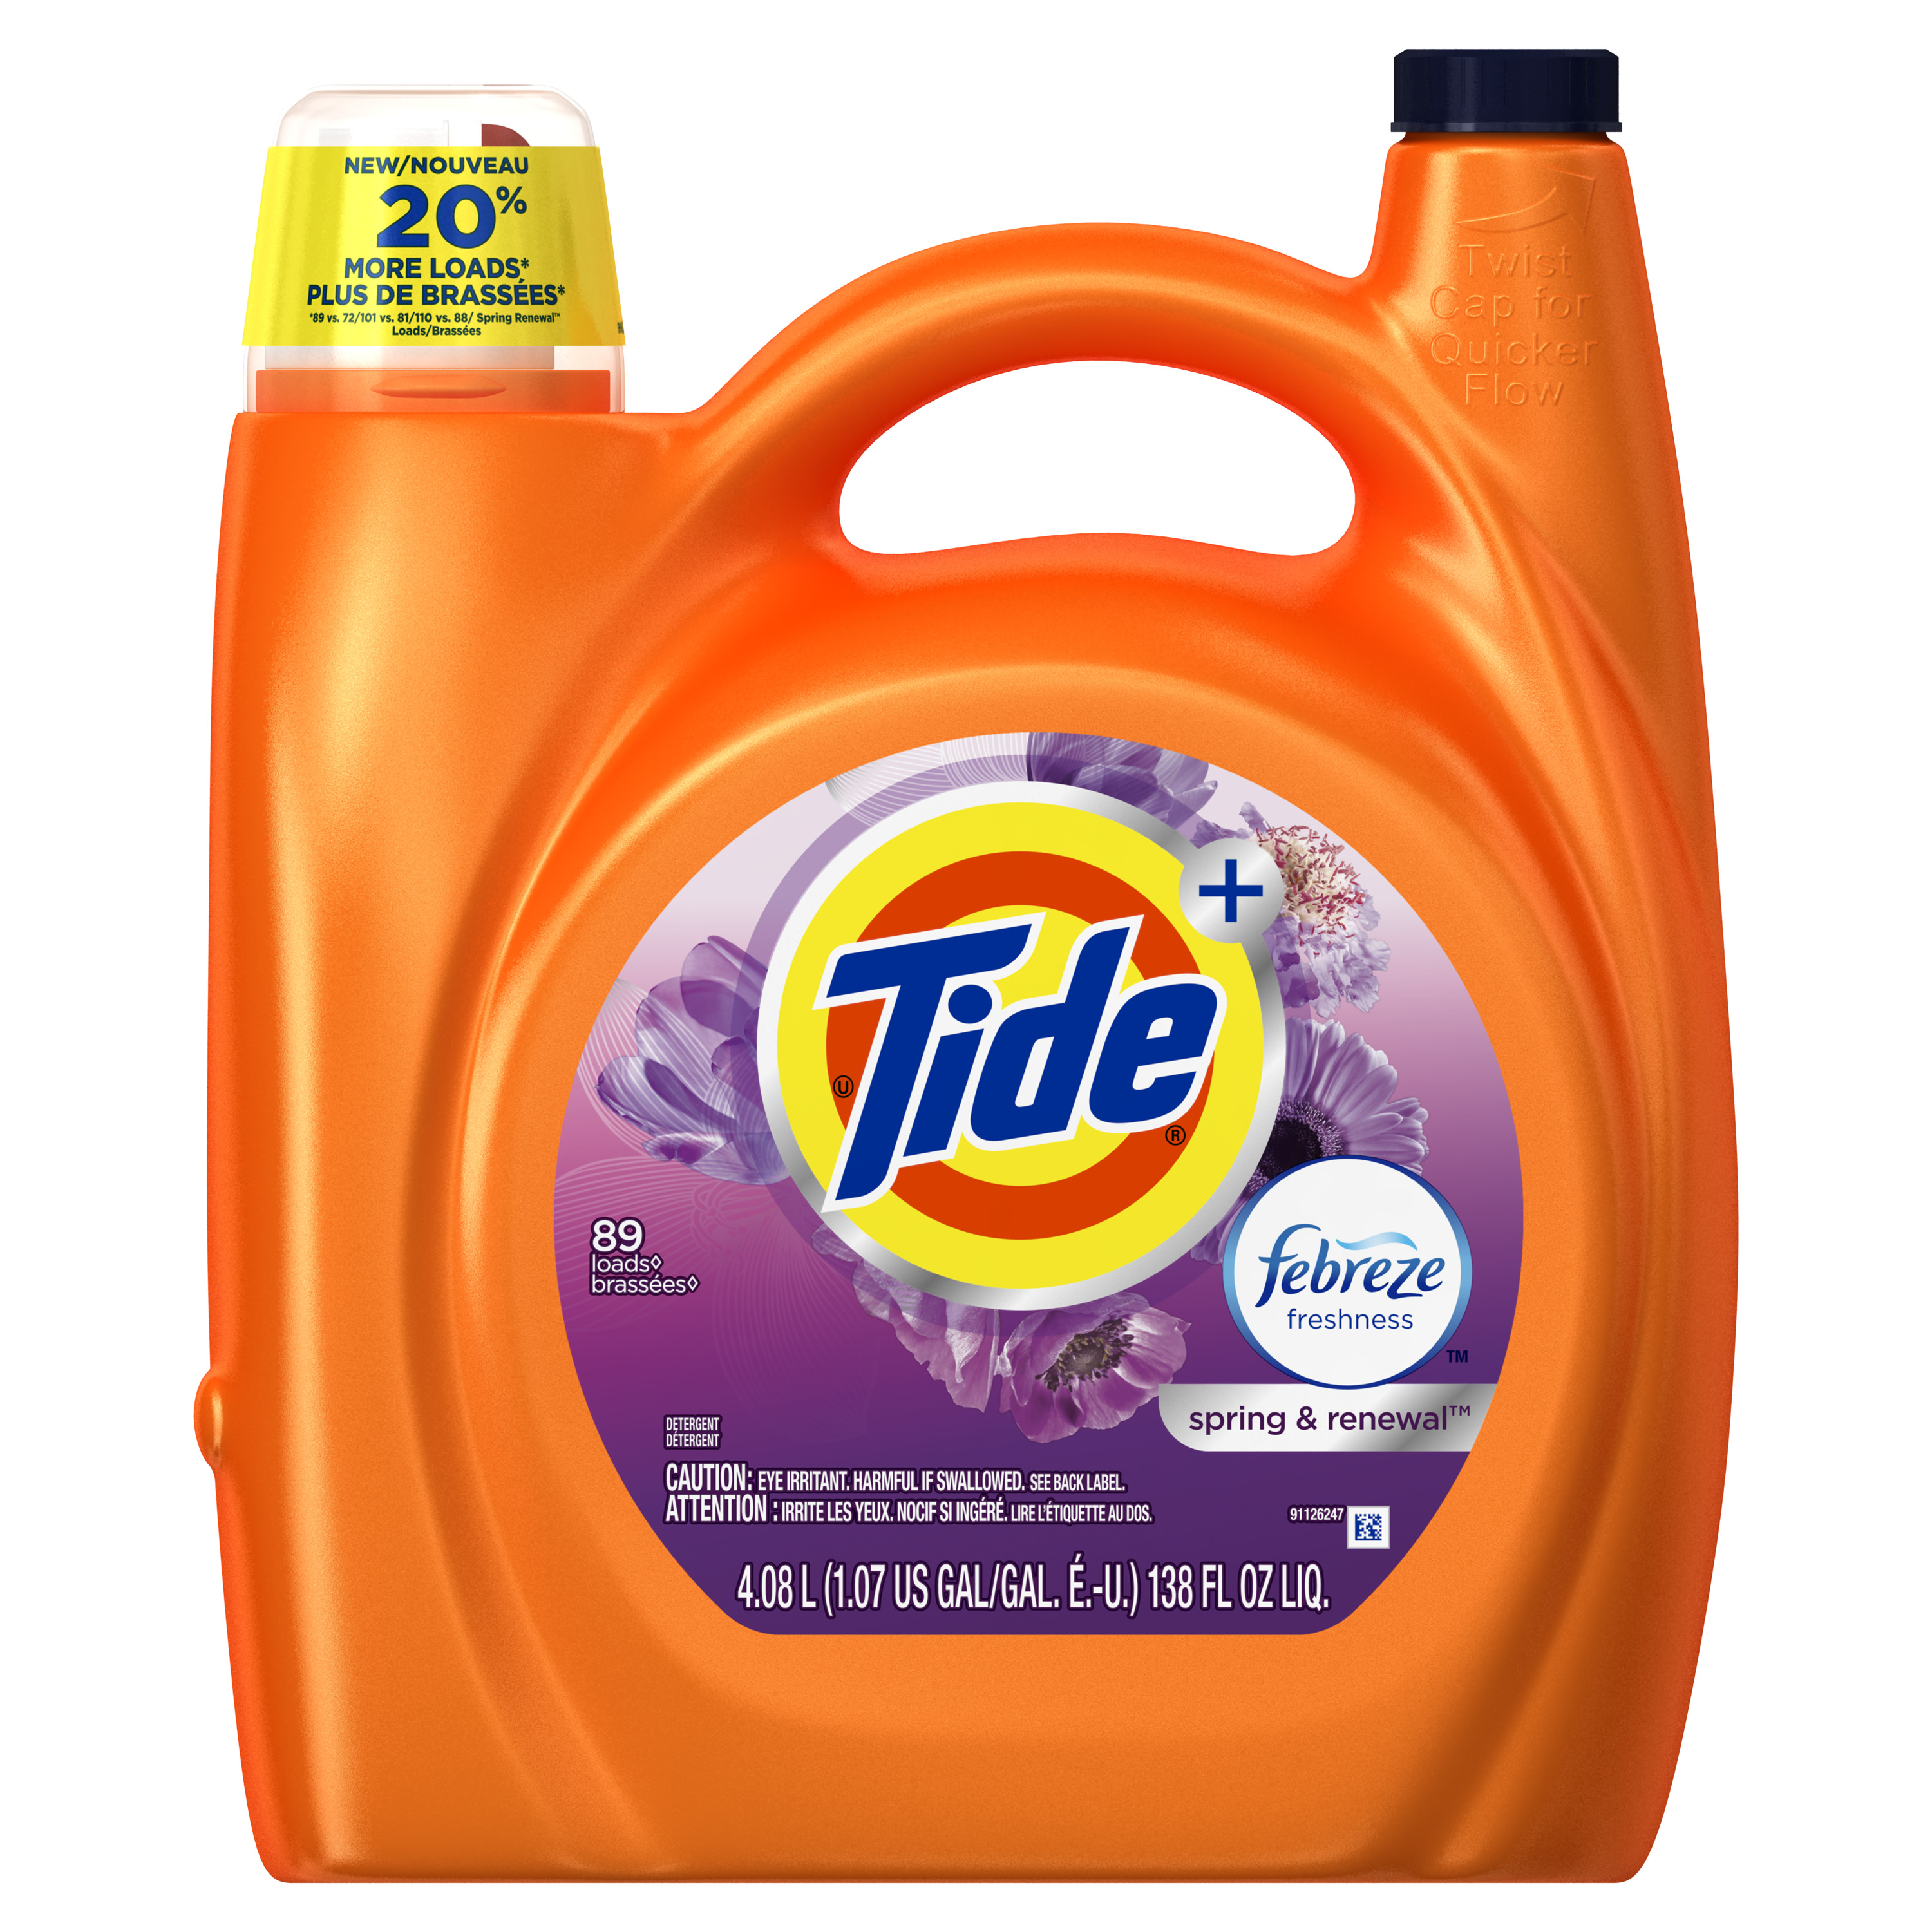 Tide Plus Febreze Freshness Spring and Renewal Scent Liquid Laundry Detergent, 138 oz, 89 loads